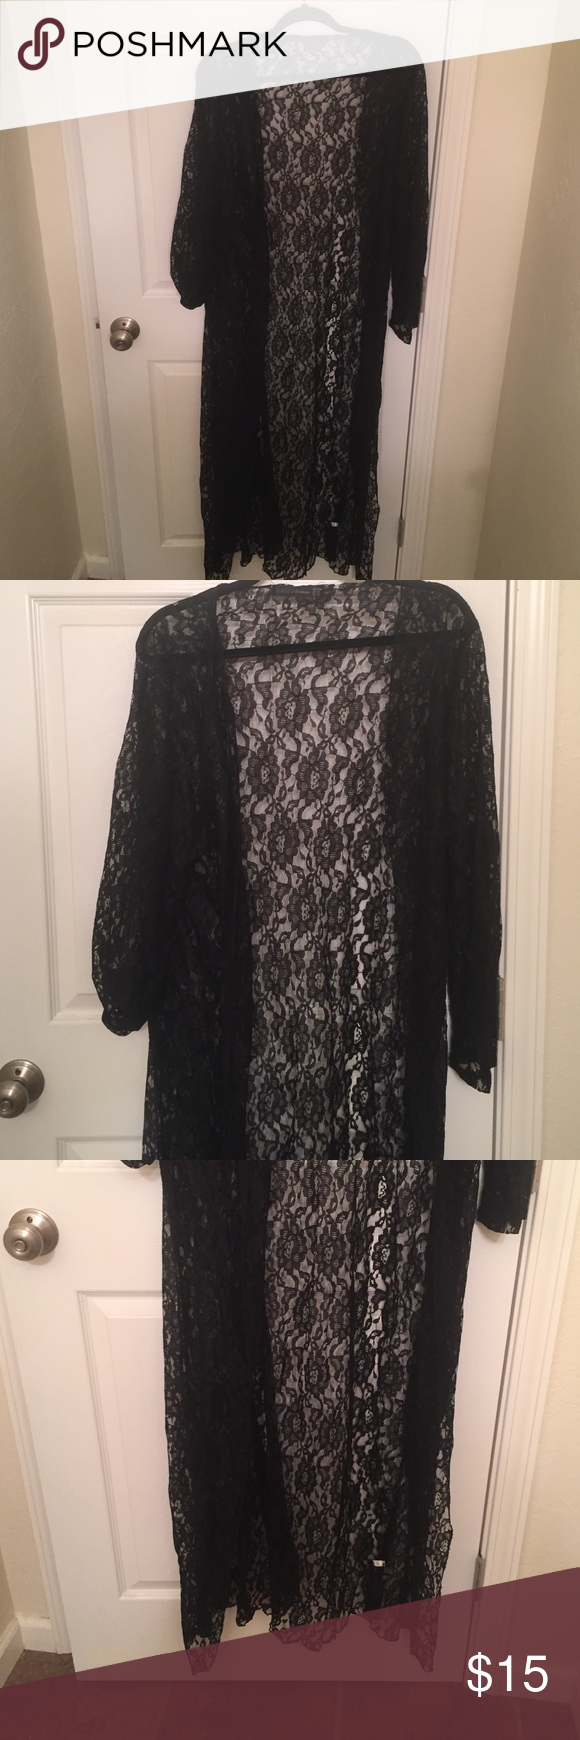 Floor length black lace cardigan | Tops, Sweater cardigan and Nice